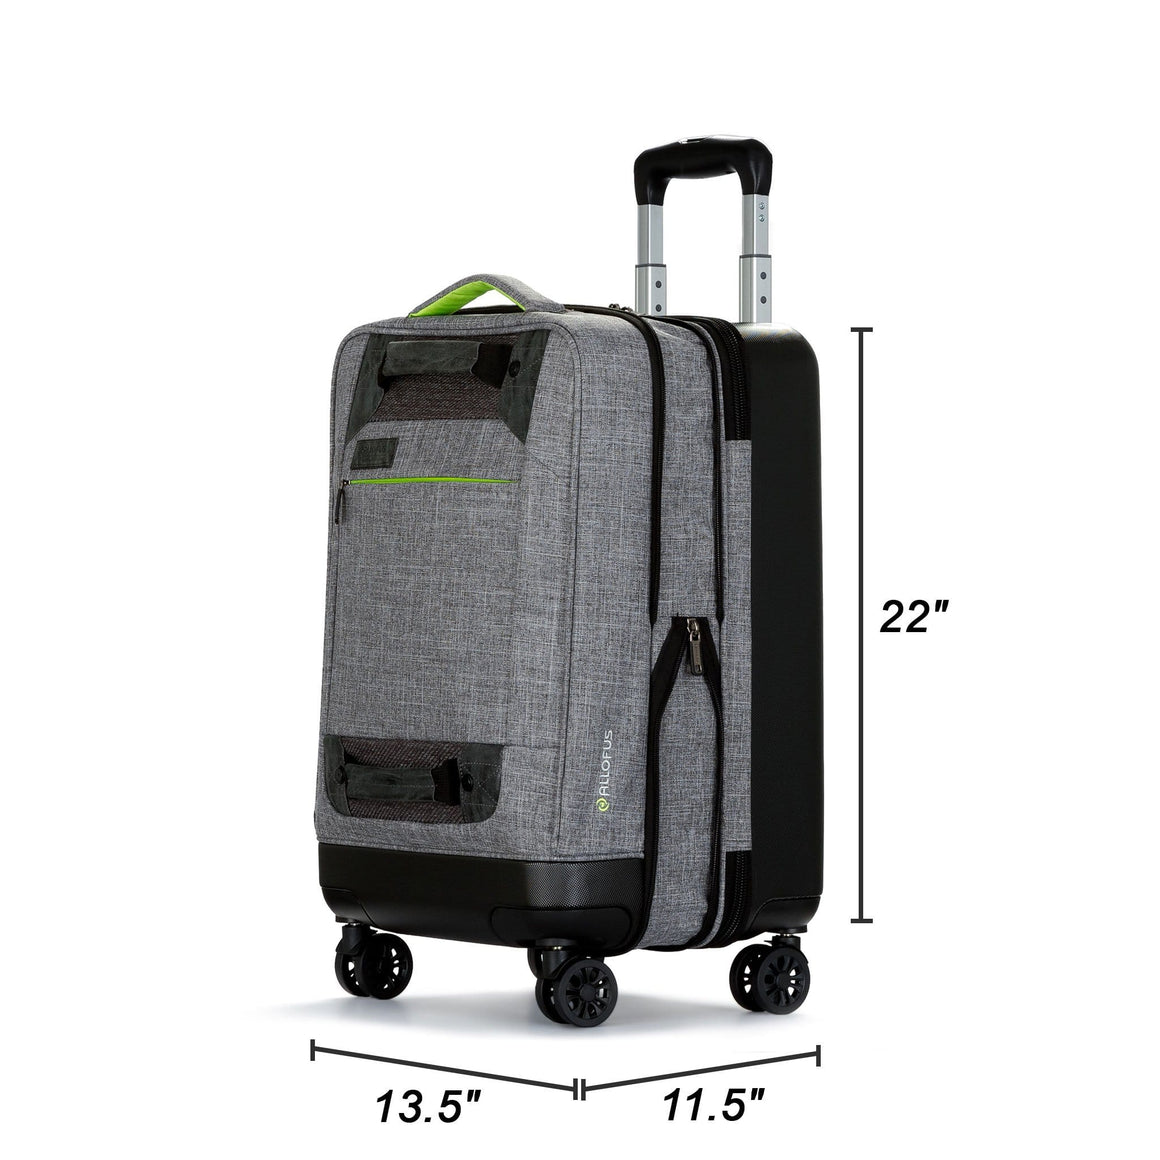 Front of Stylish Hybrid Rolling Carry On Spinner Suitcase with gray and green highlighting